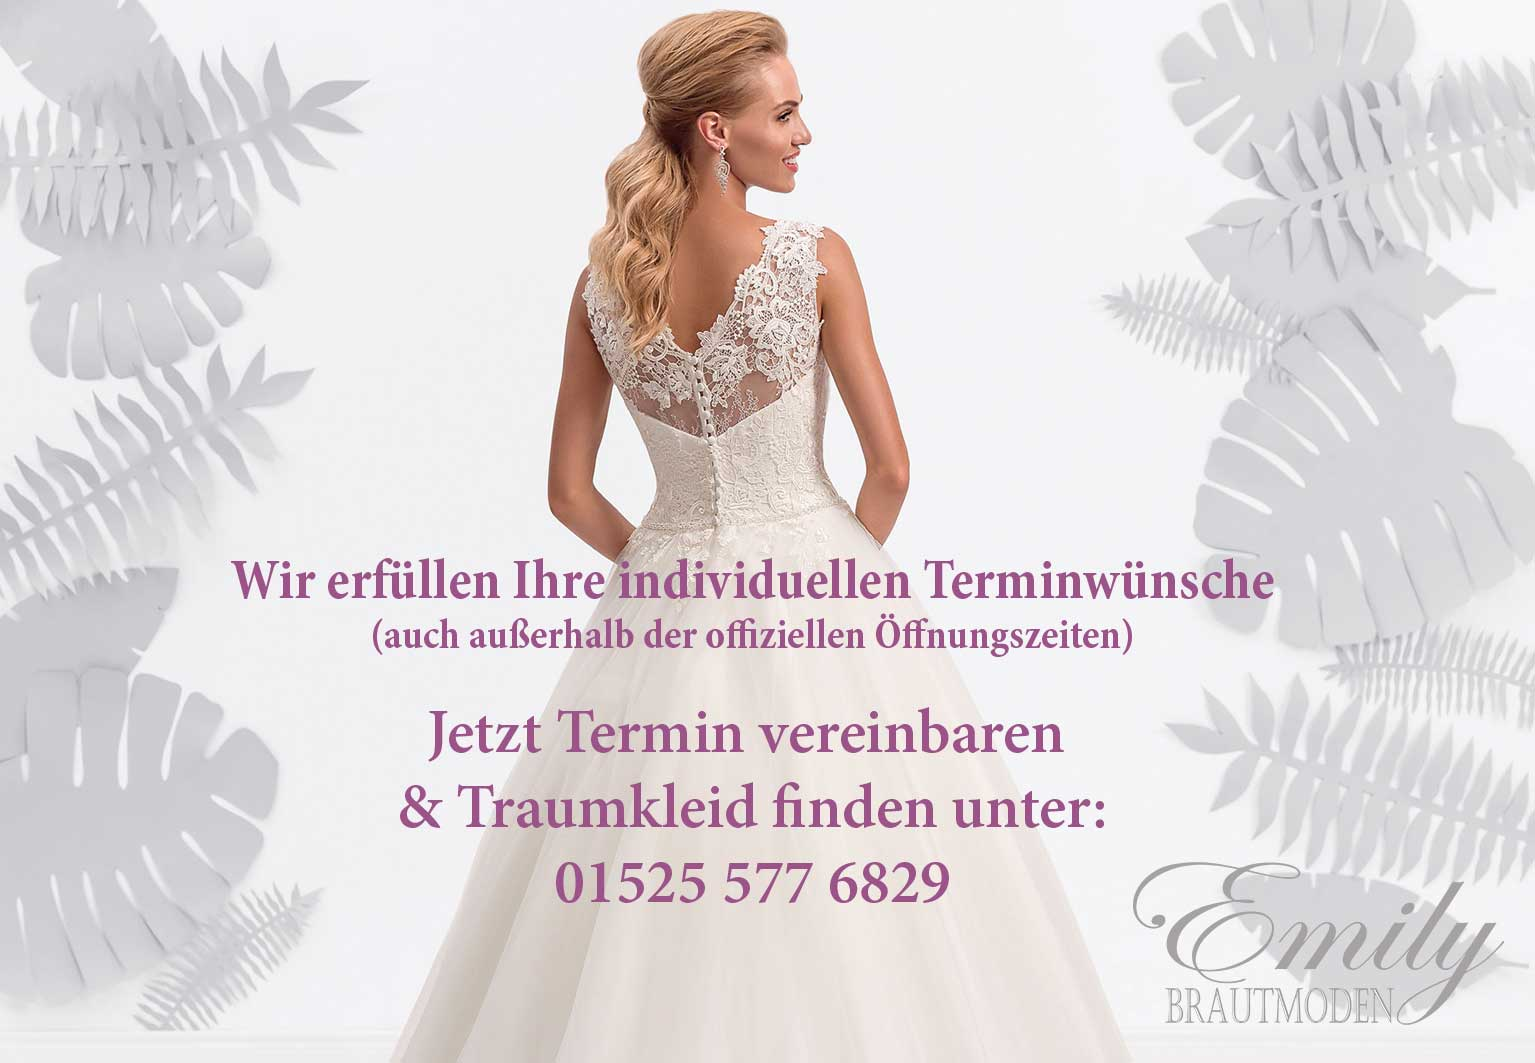 fb-post-individuelle-terminwunsche-2